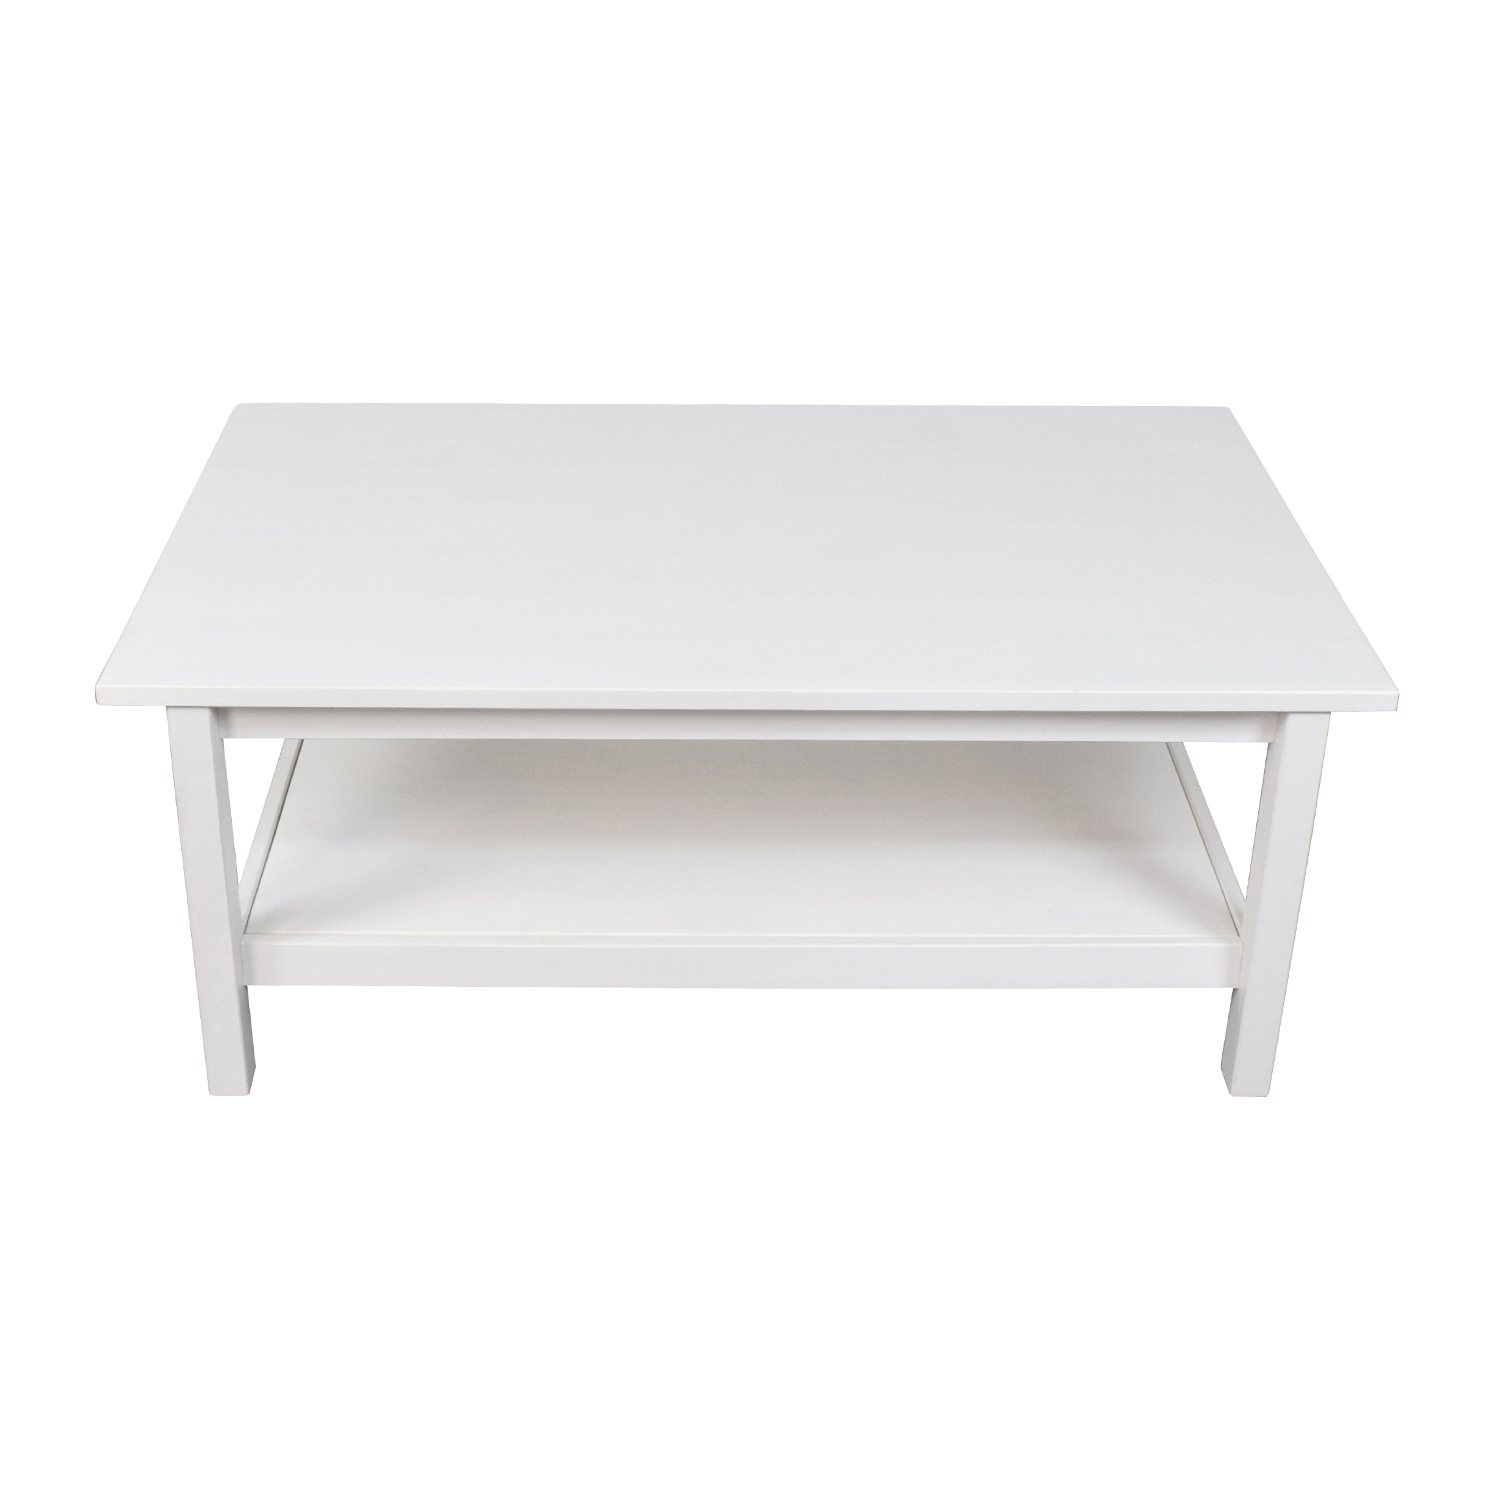 27% OFF Ikea IKEA Hemnes Coffee Table Tables